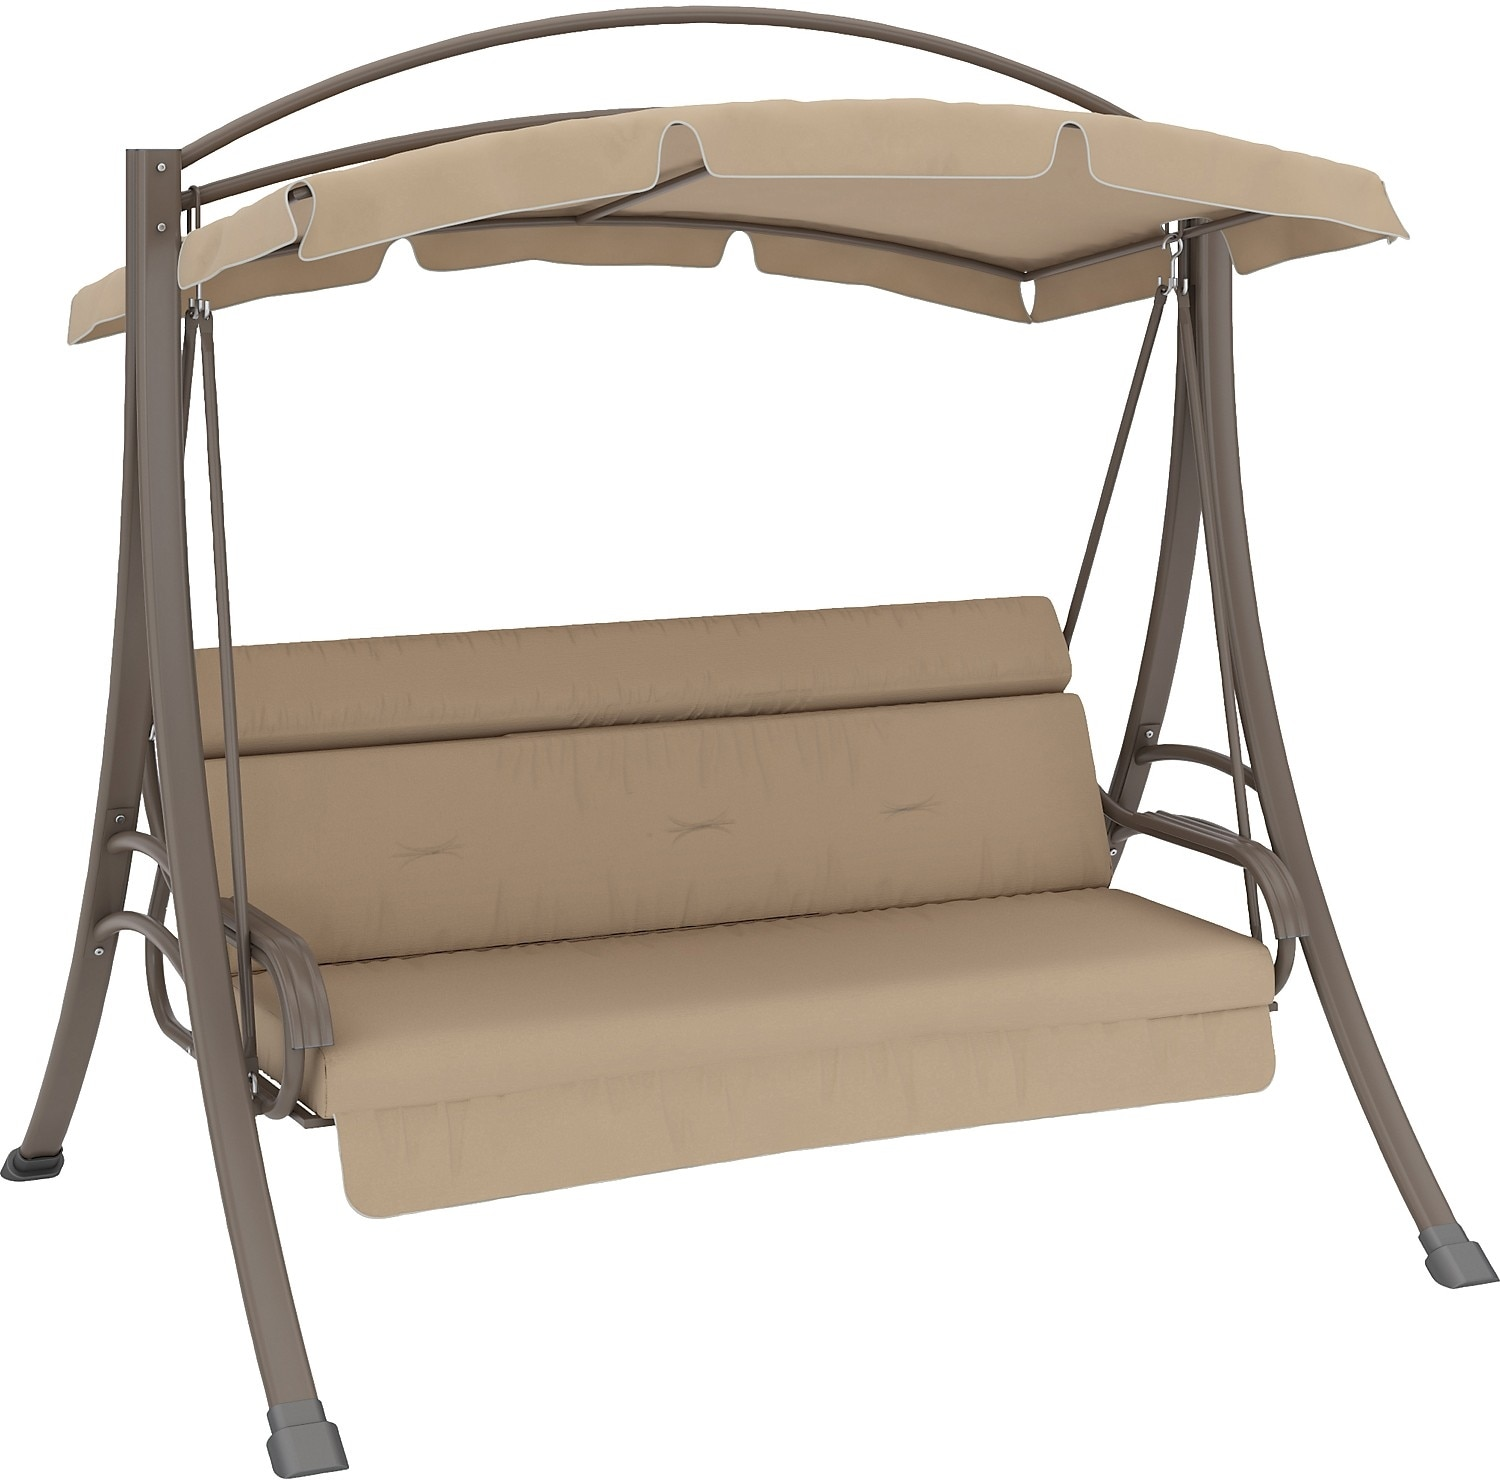 Outdoor Furniture - Nantucket Patio Swing with Arched Canopy - Beige